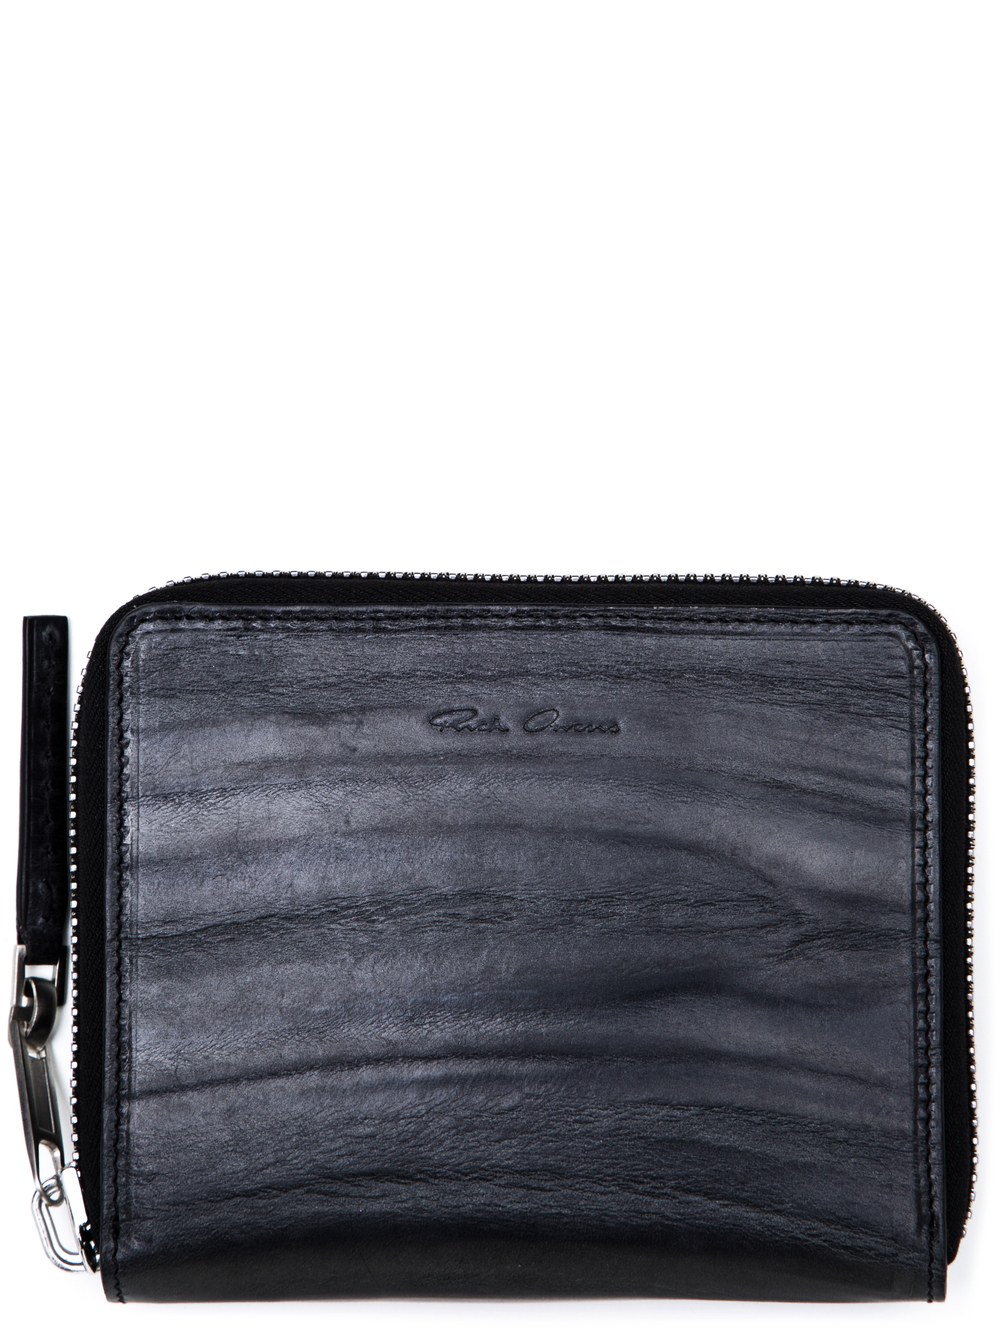 RICK OWENS SMALL ZIPPED WALLET IN BLACK COW LEATHER